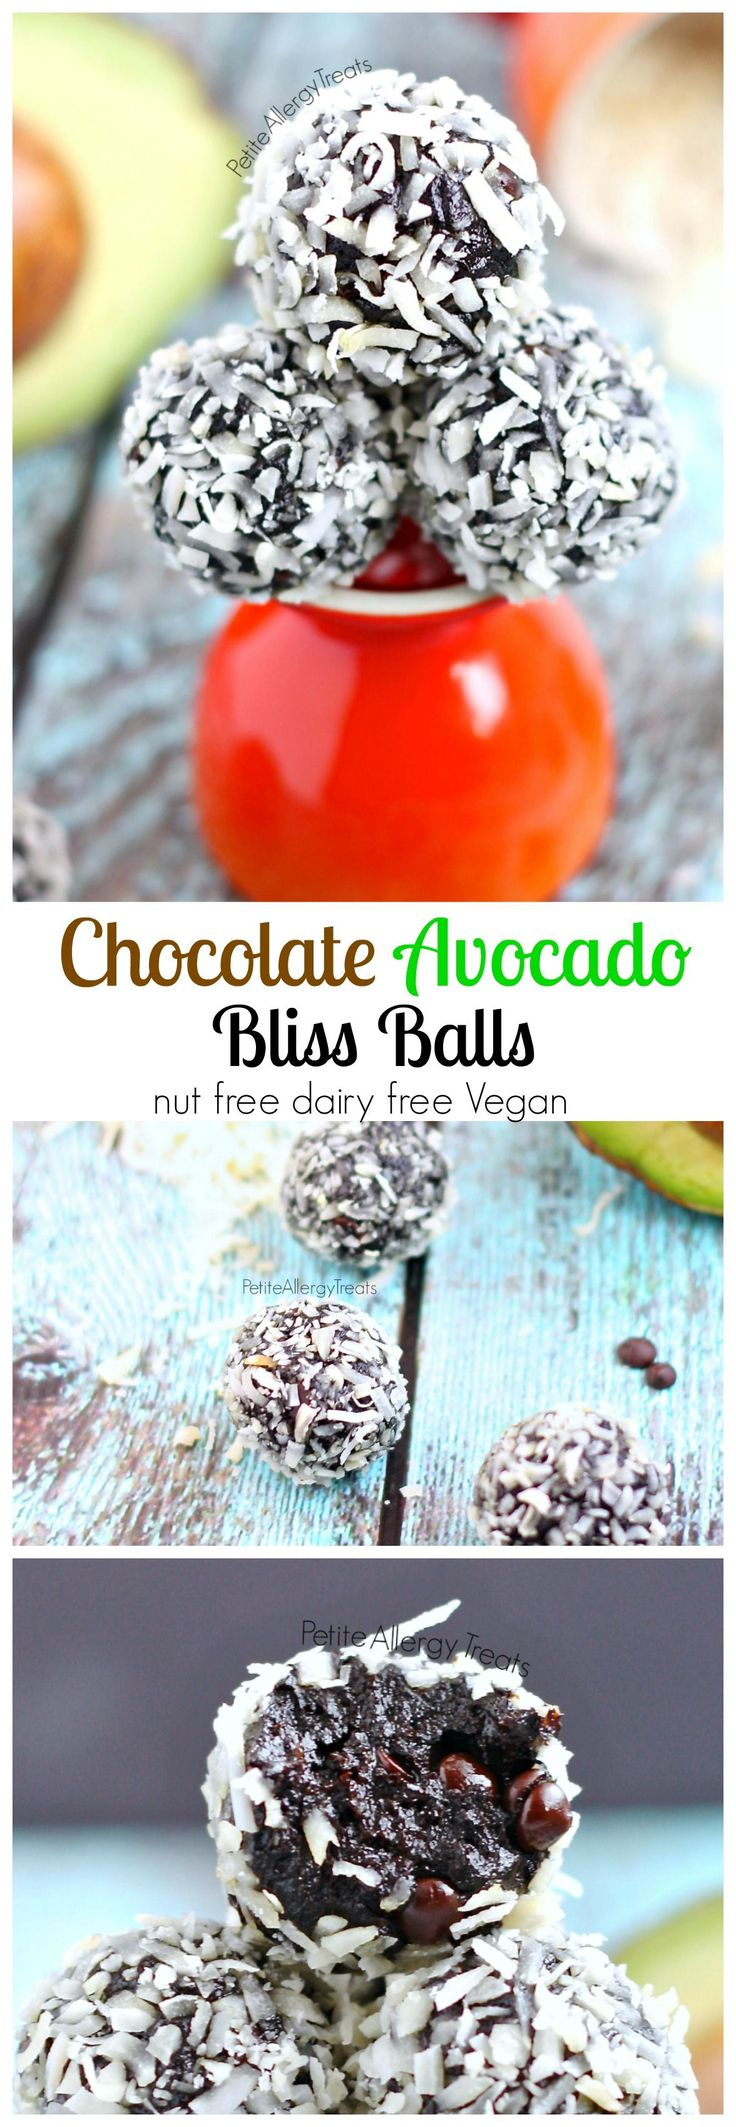 Chocolate Truffle Bliss Balls recipe (Vegan)- Healthy raw chocolate energy balls made avocado and seed butter.